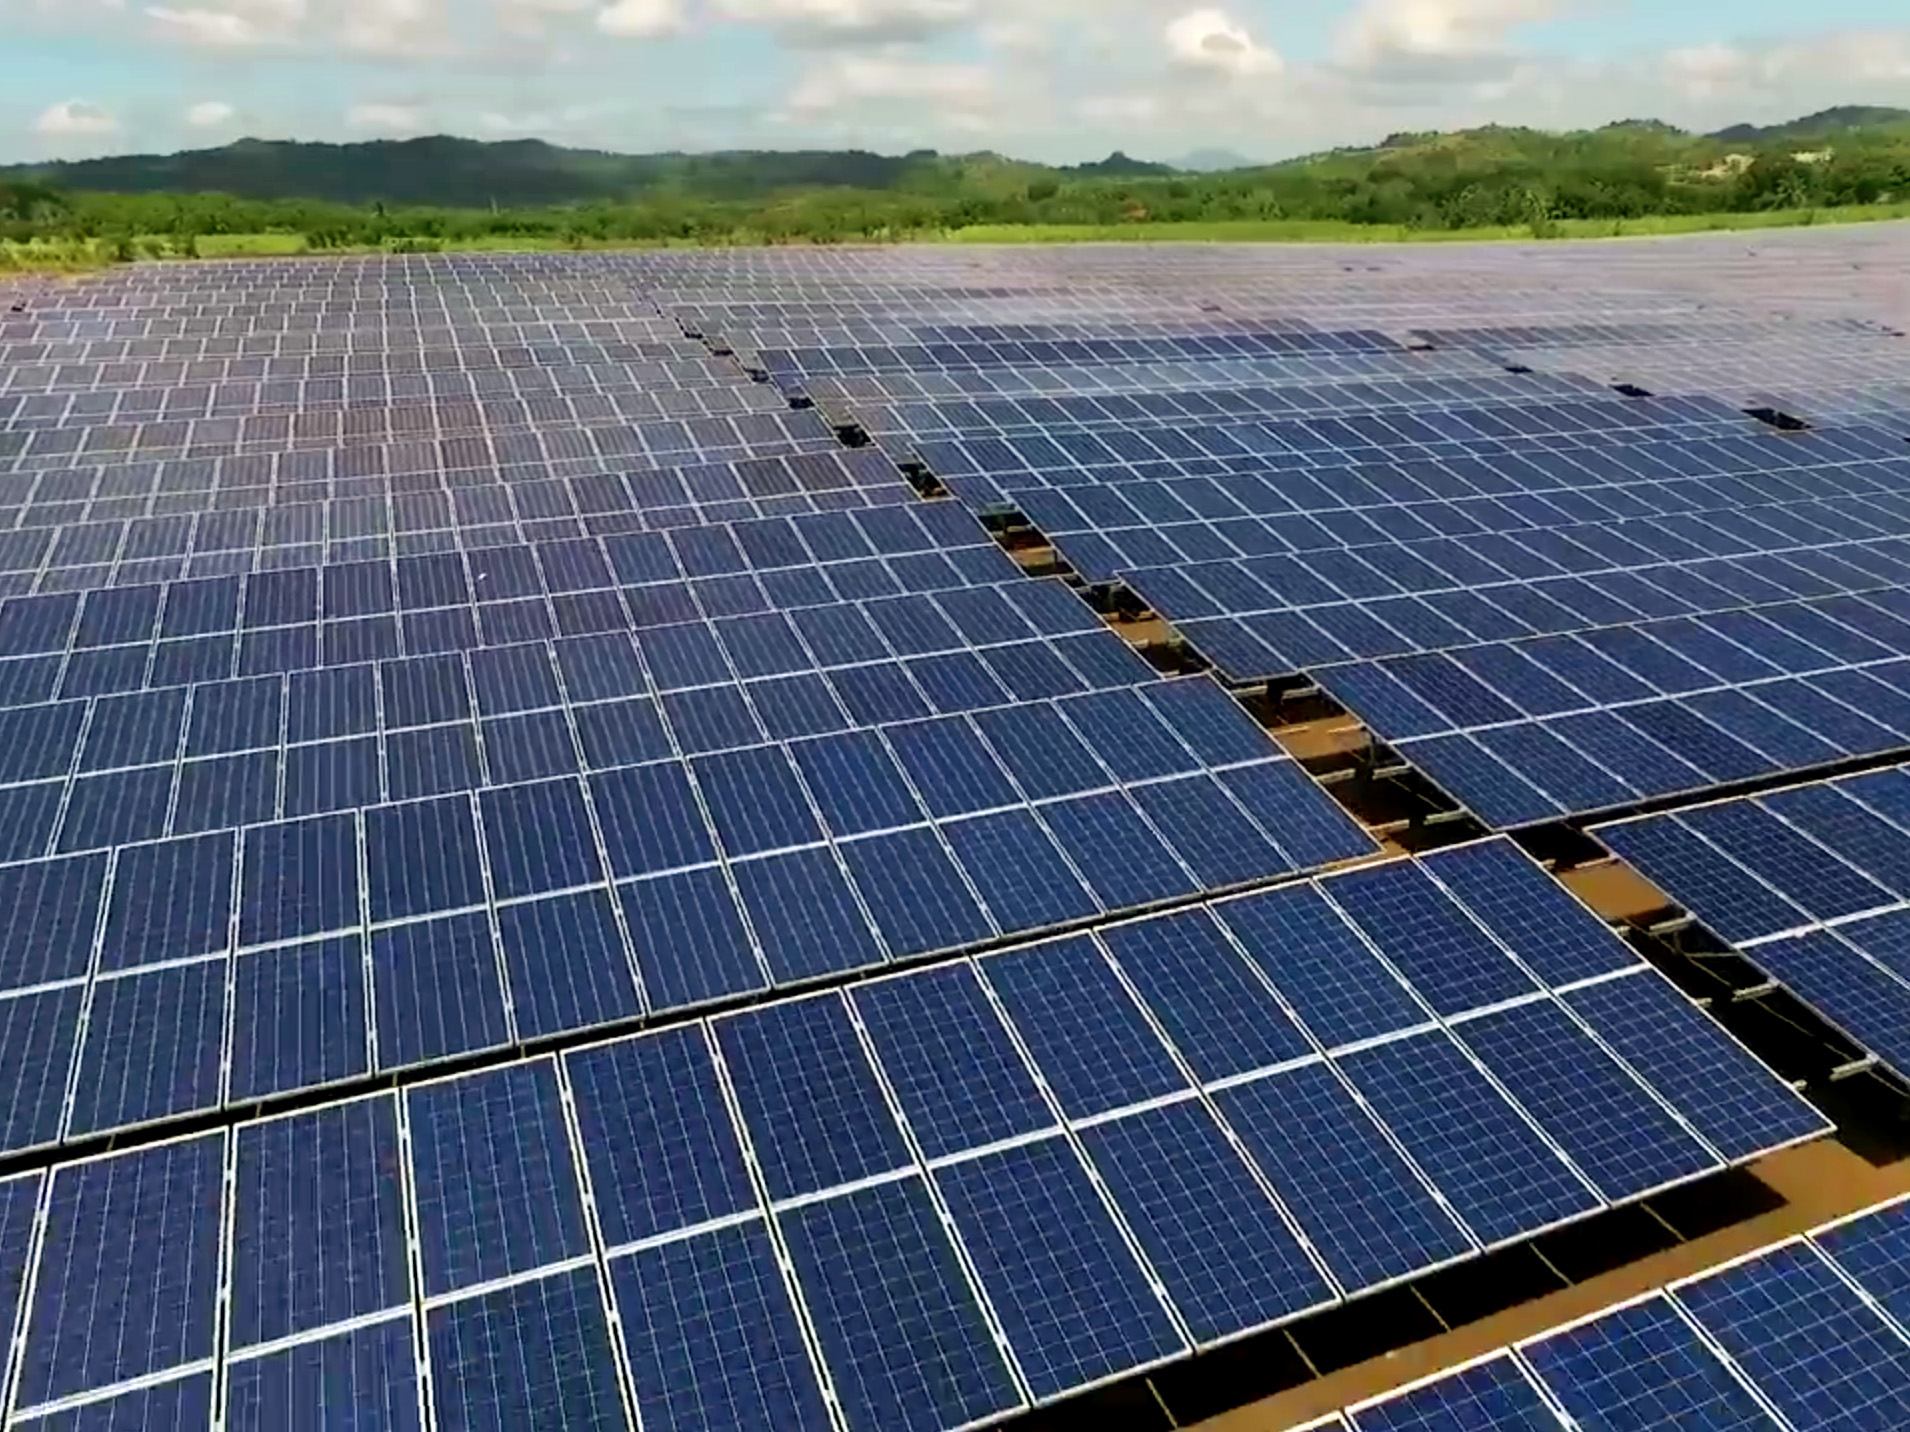 While corporate PPAs thrive, the utility-scale PV sector has to consider taking merchant risk in the unregulated market. Credit: Solar Philippines